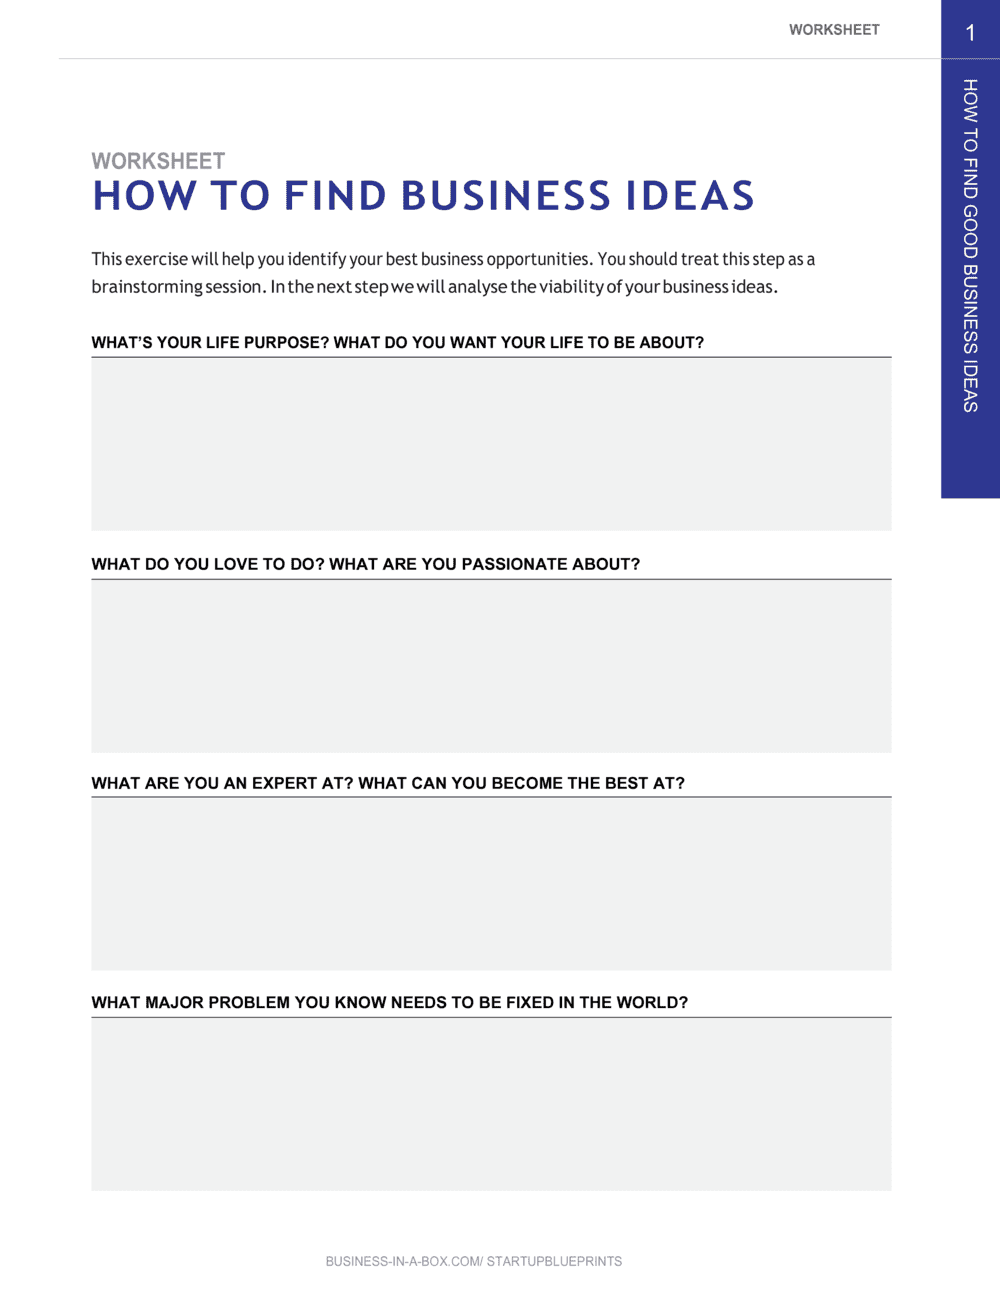 Business-in-a-Box's How To Find Good Business Ideas_startup Blueprints_chapter 1 Worksheet Template